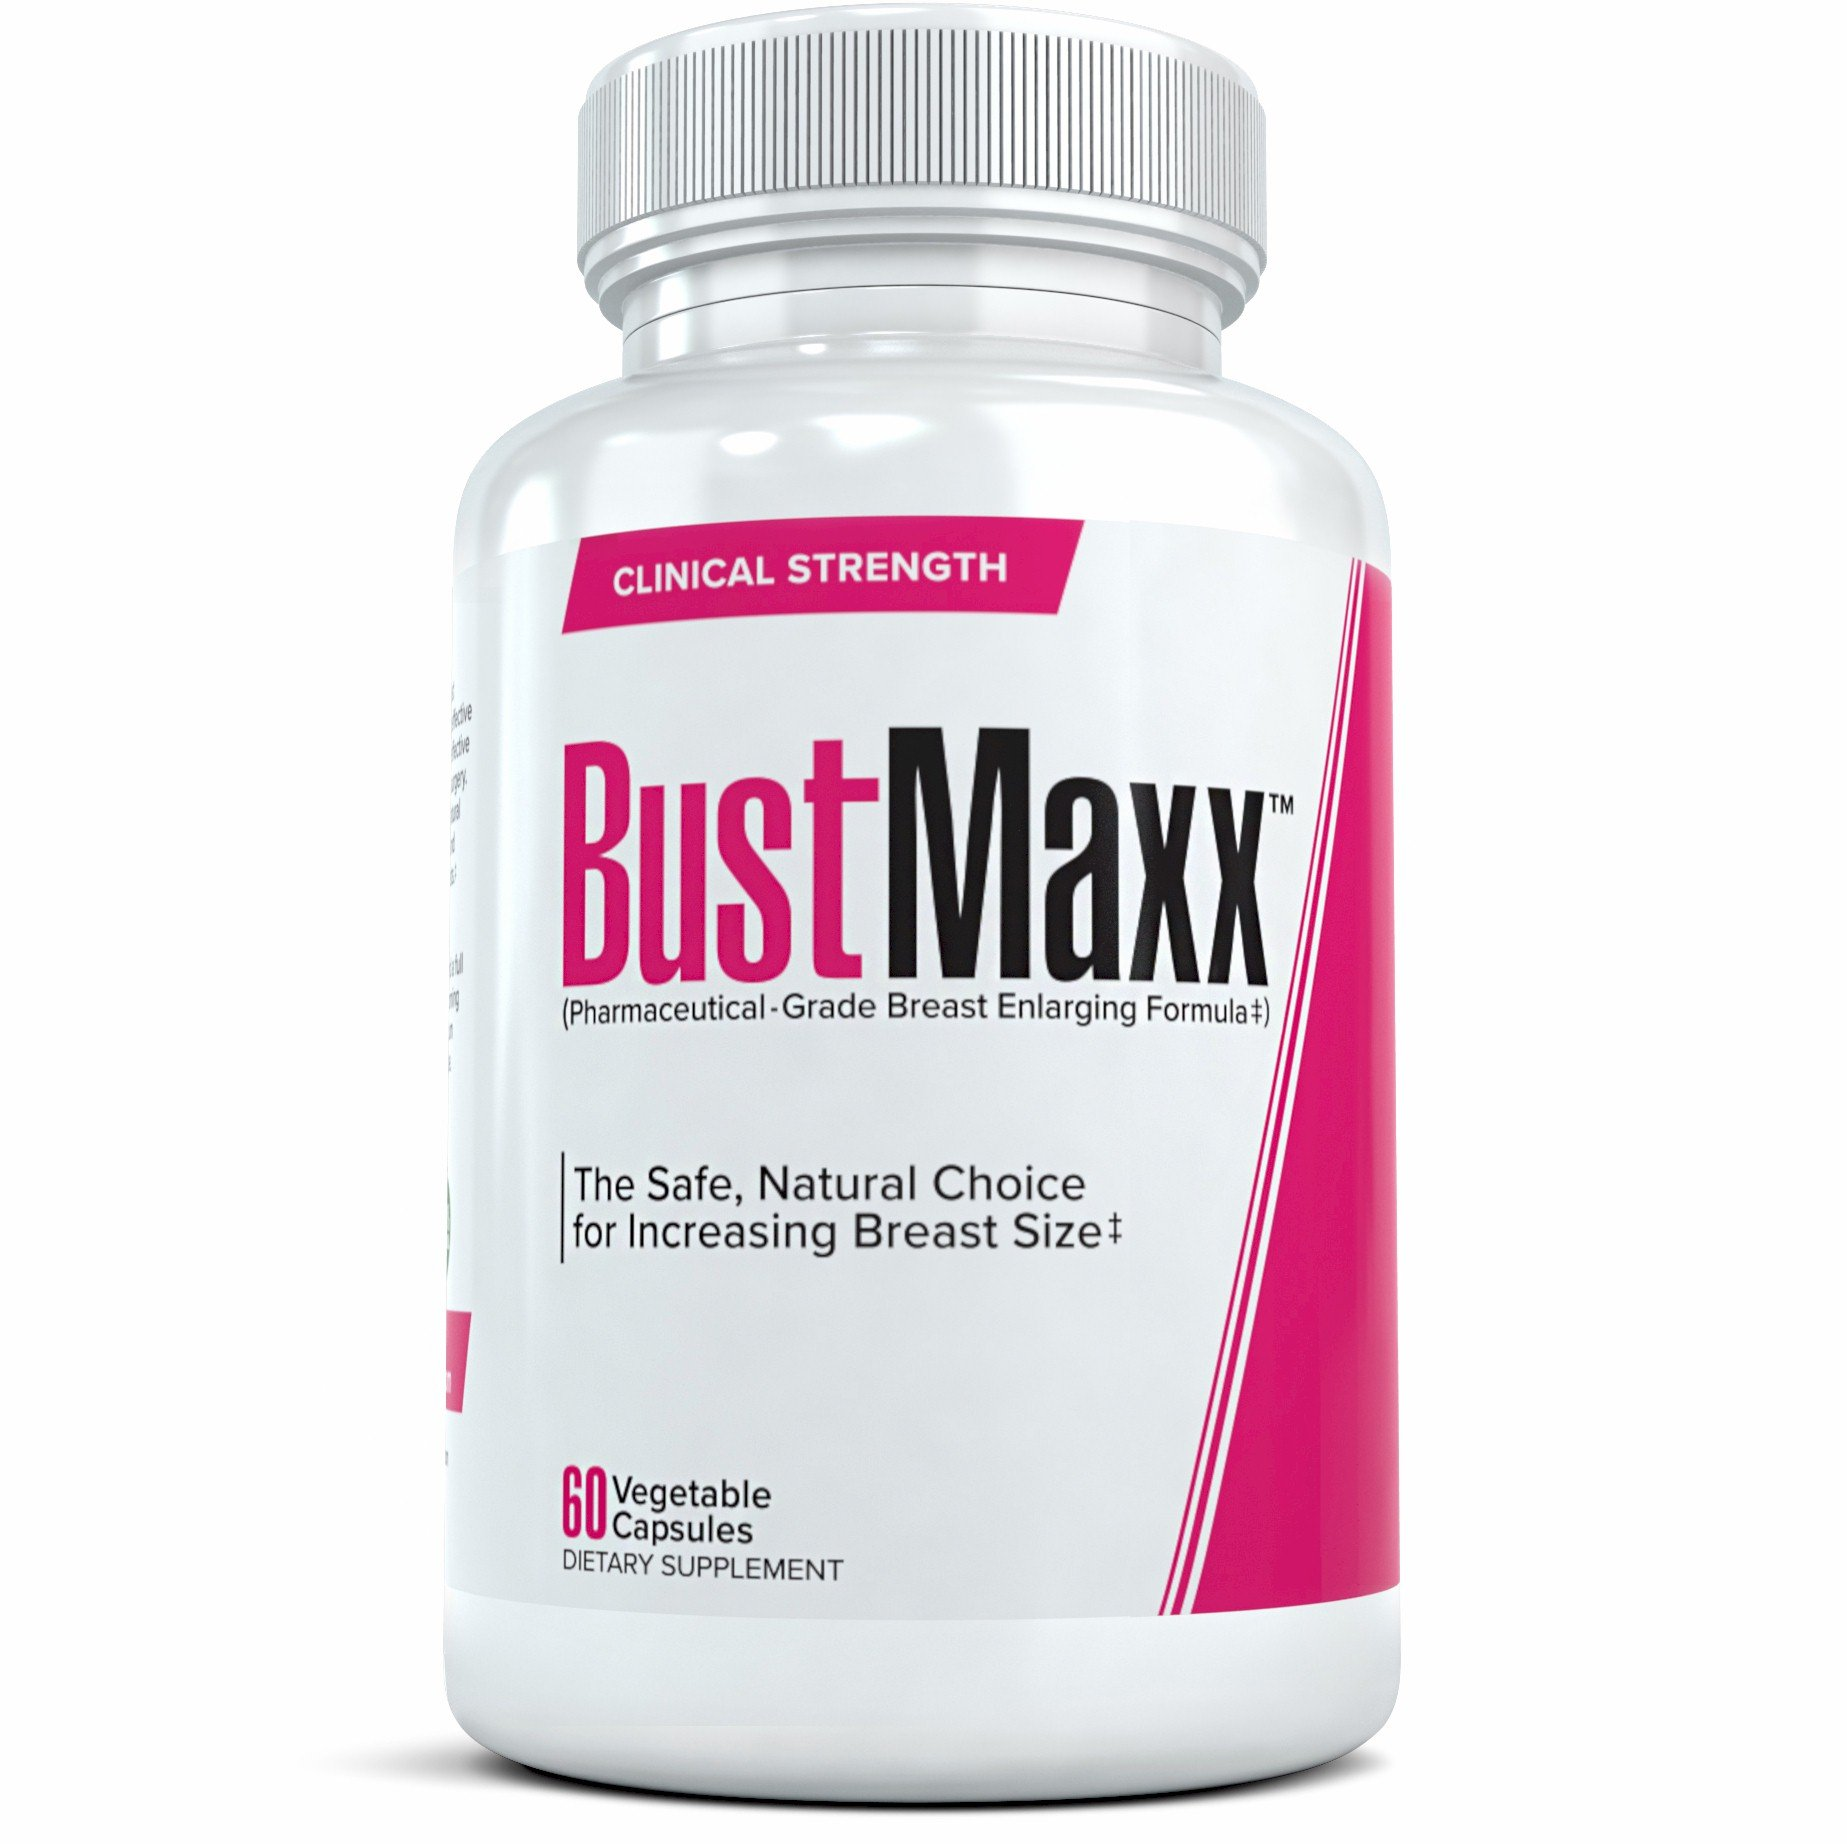 Bustmaxx All Natural Enlarging and Enhancement Supplement Capsules, 60 Count